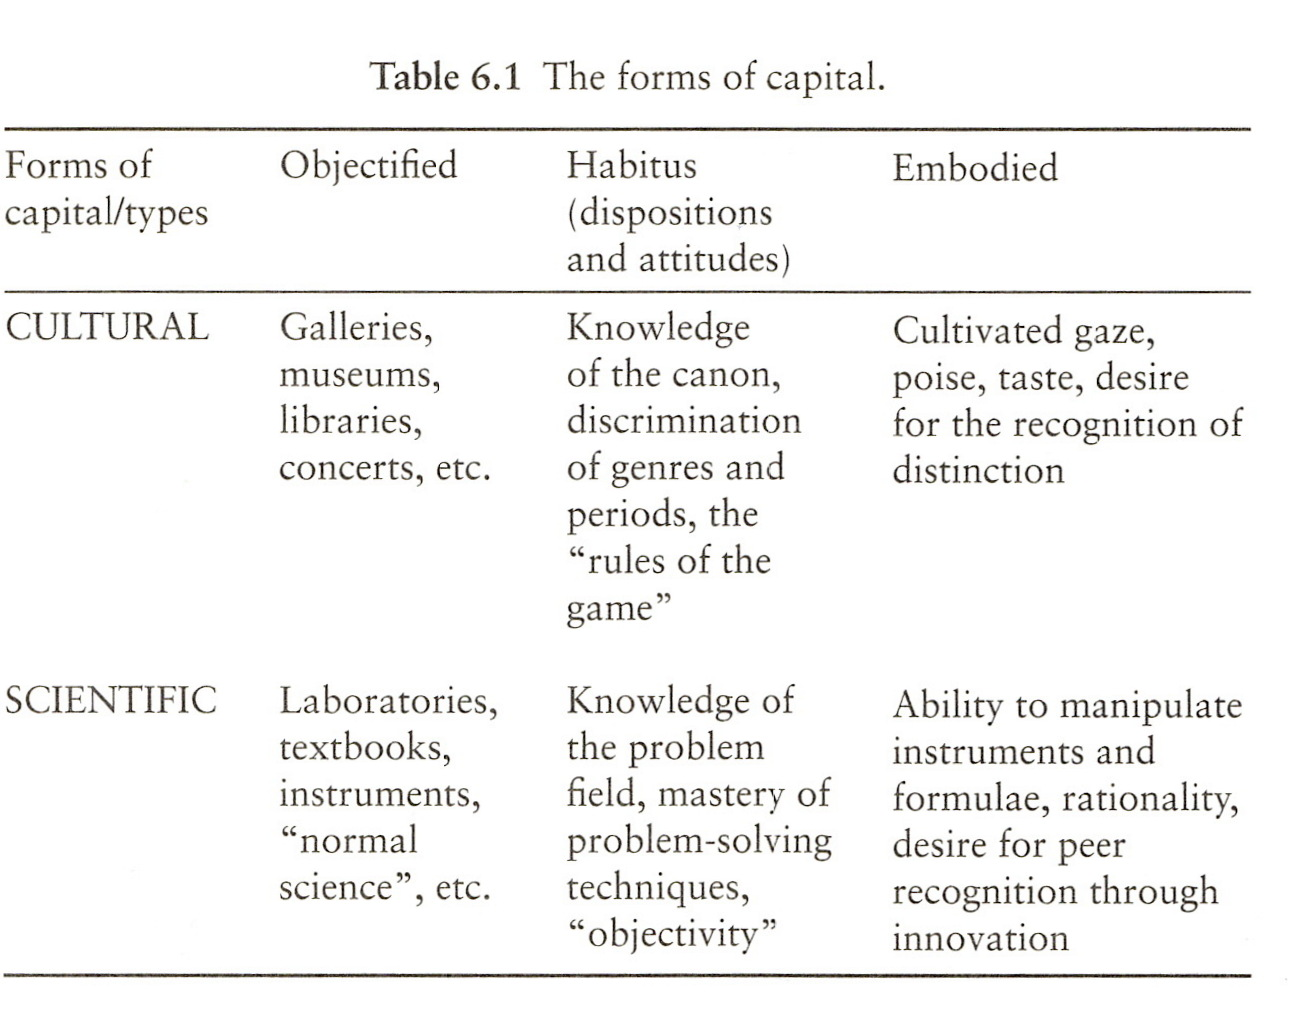 The Forms of Capital